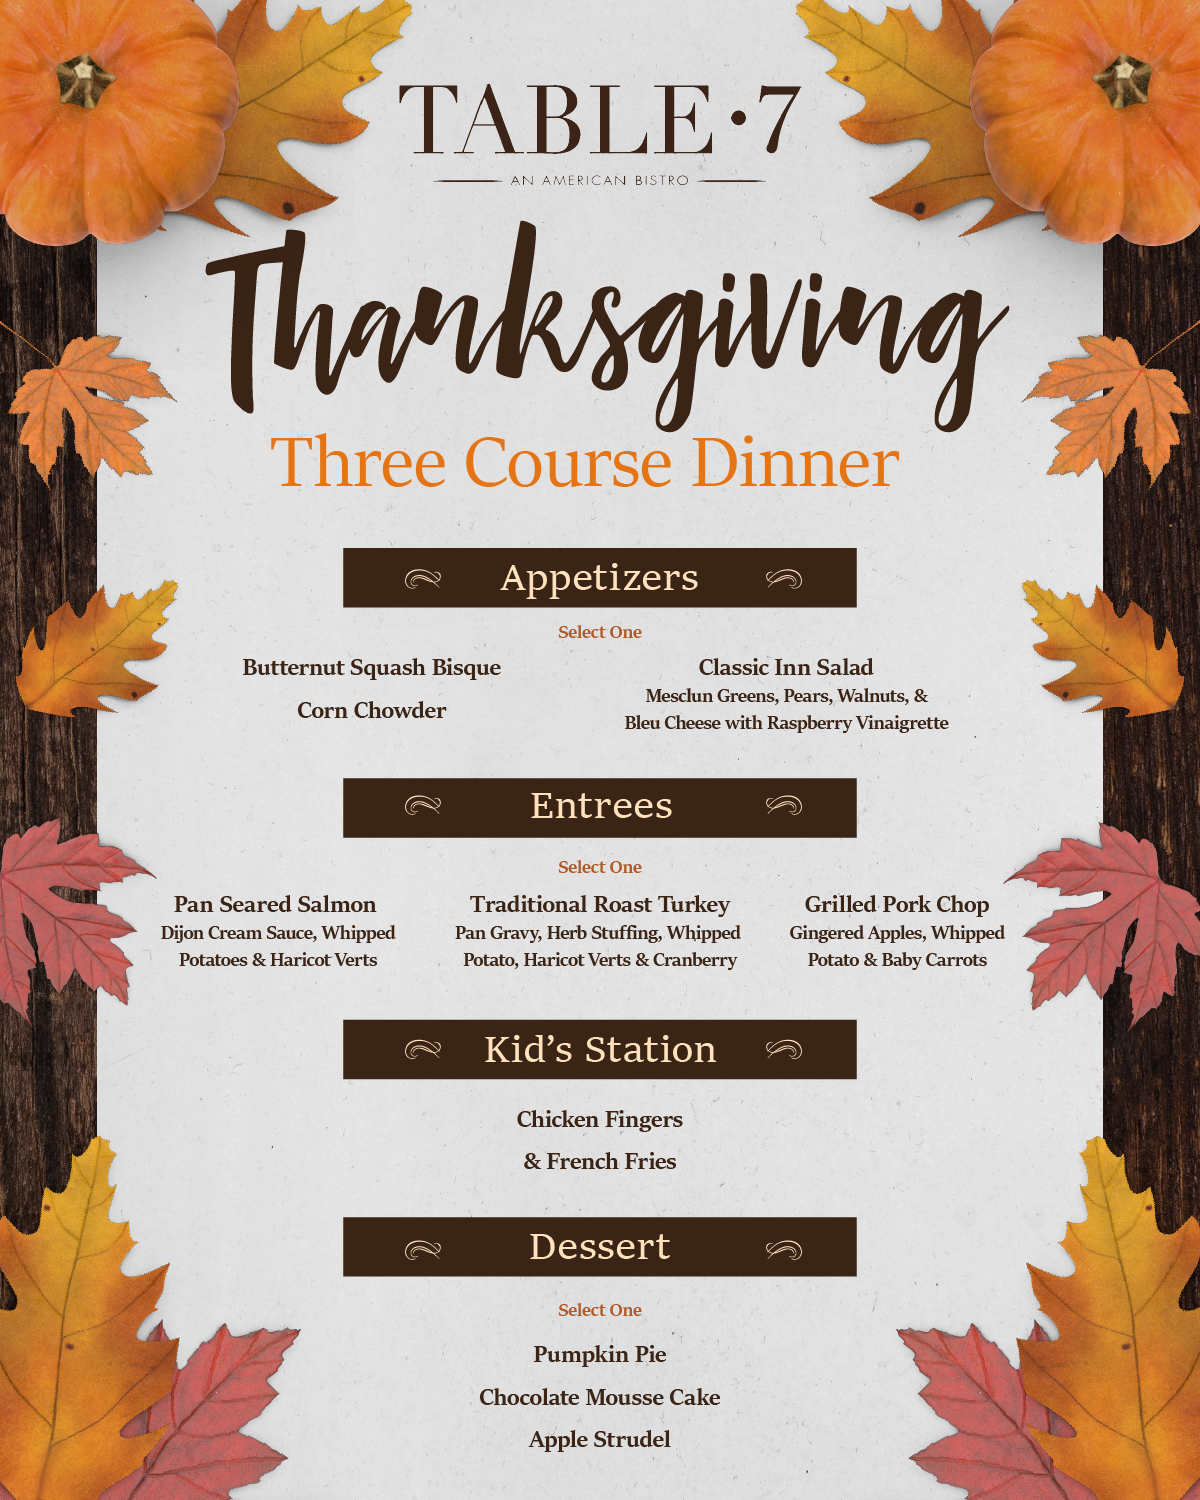 Thanksgiving Dinner at Table 7